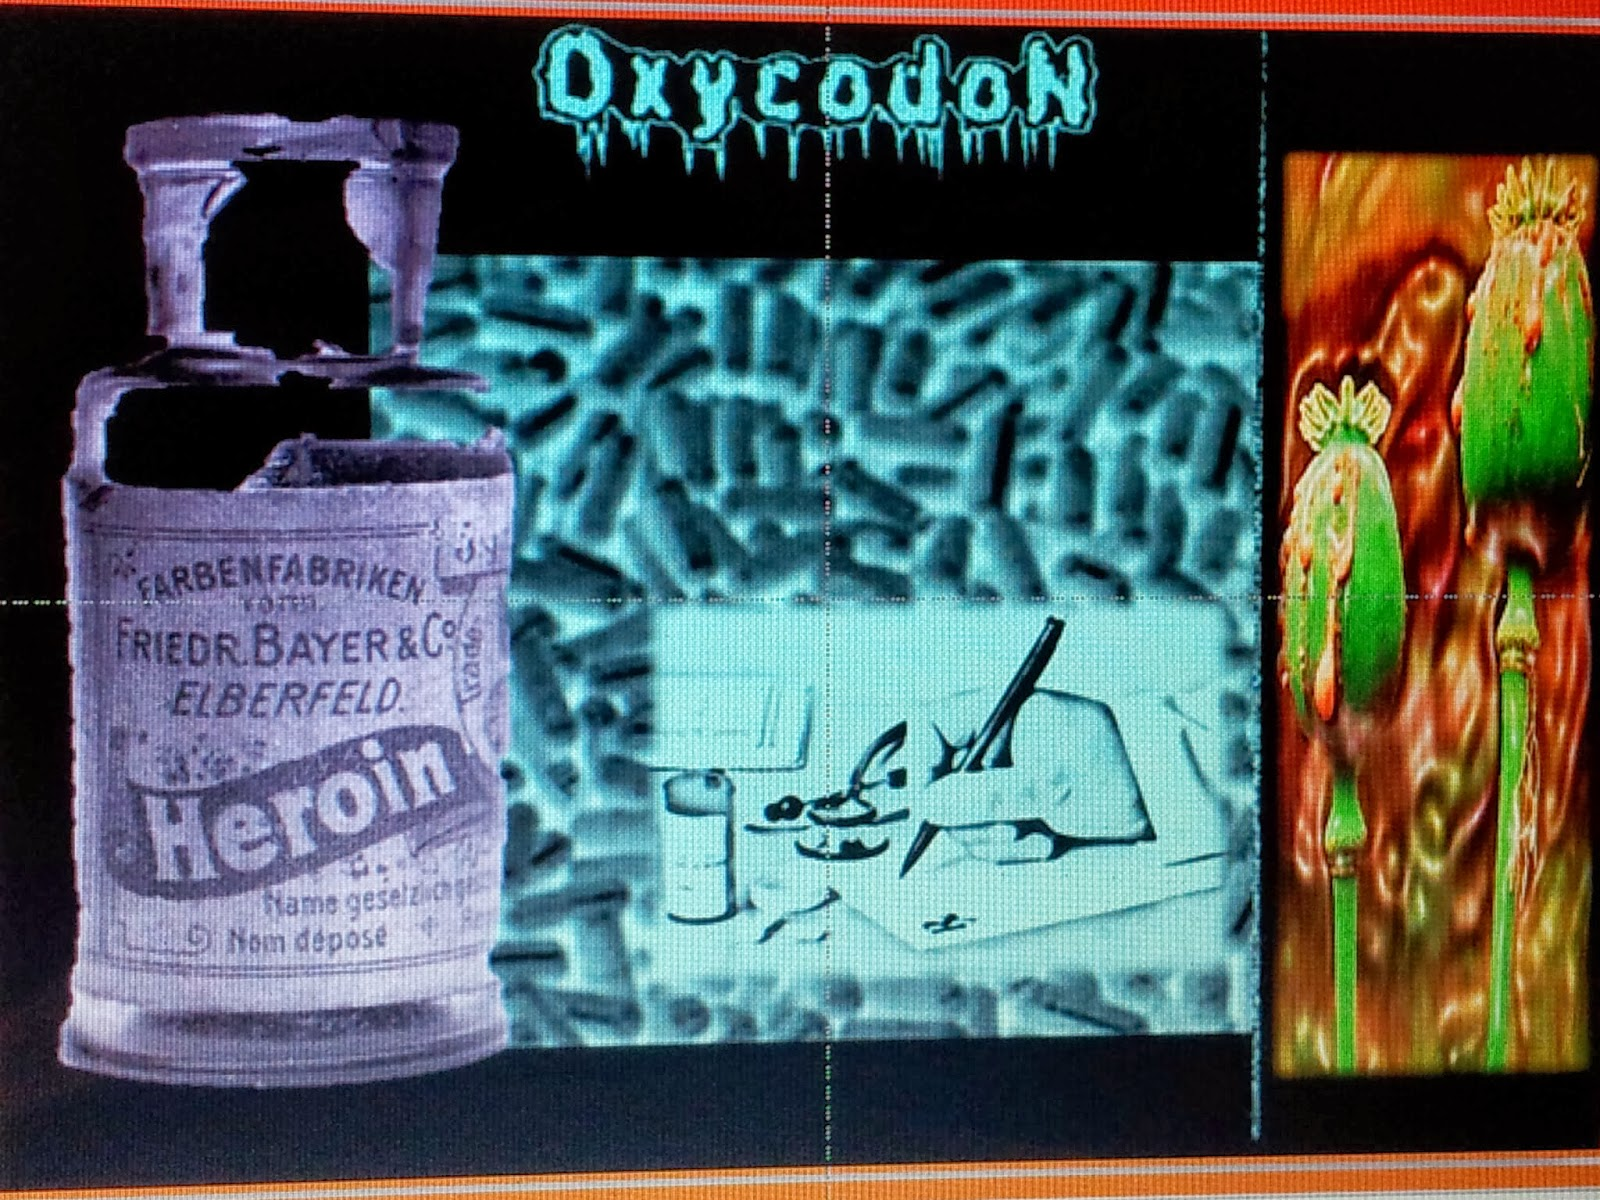 Deocadity40s soup verschil oxycodon oxycontin fandeluxe Images